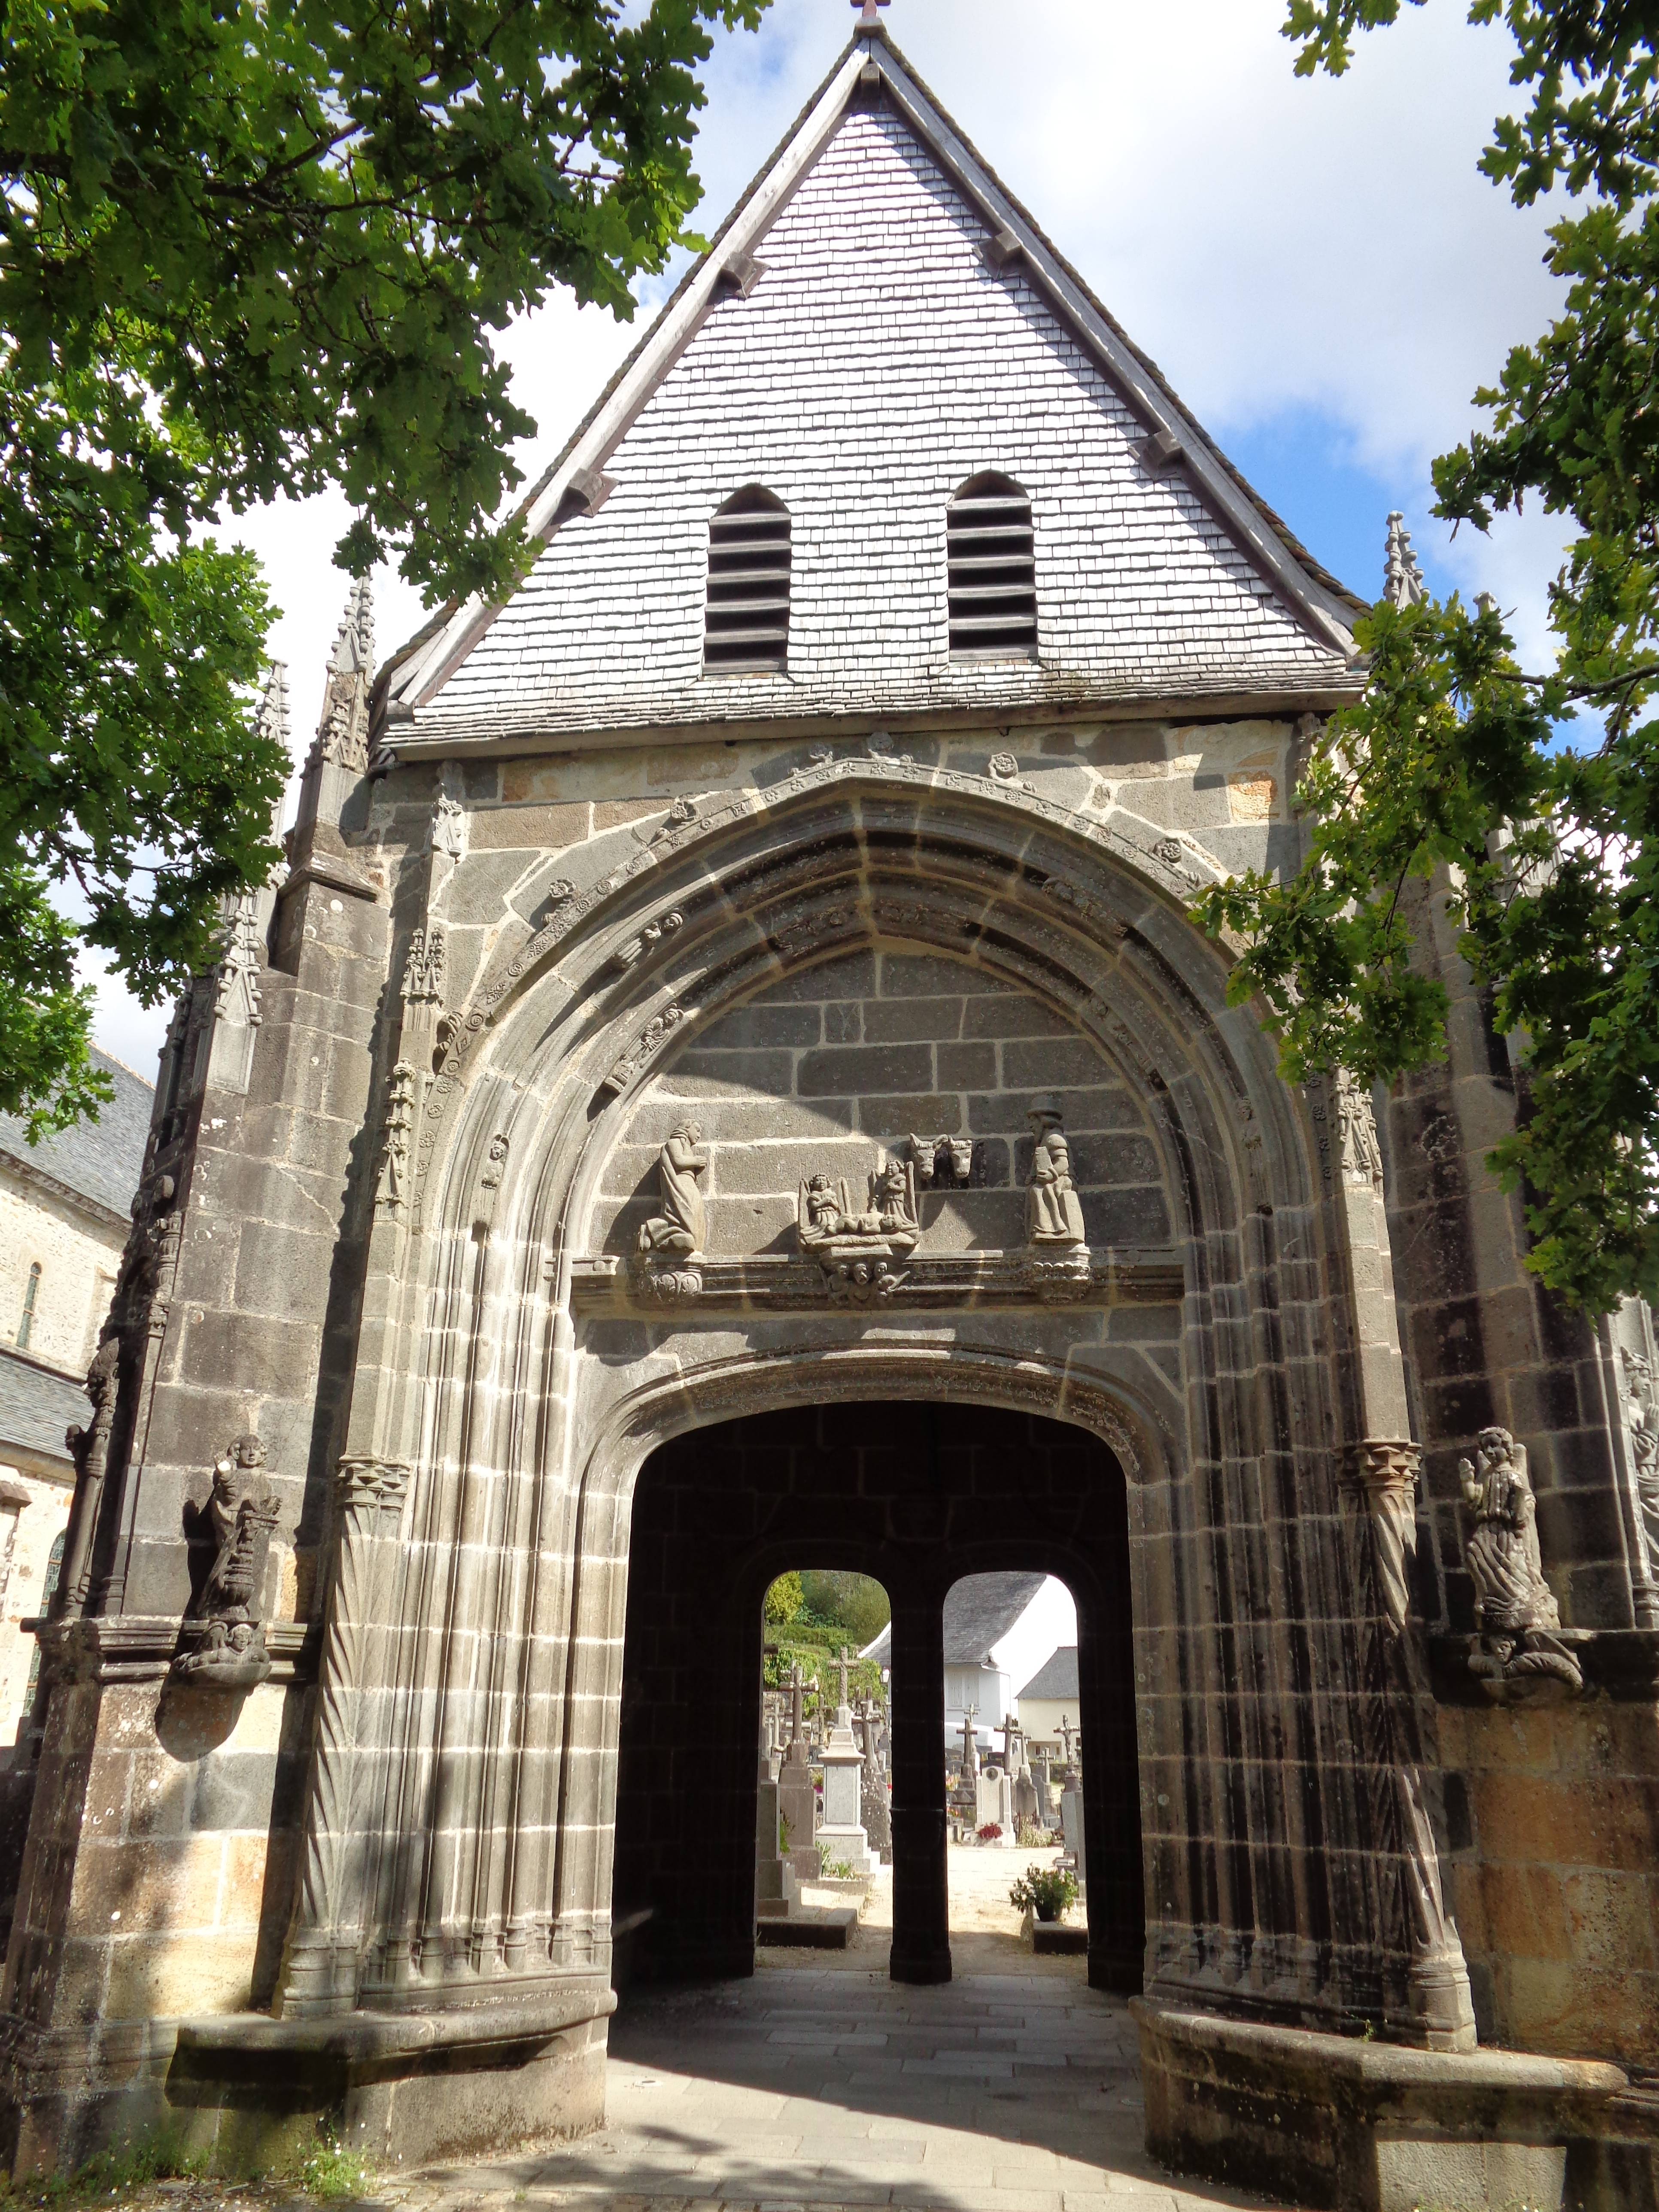 Daoulas abbaye ch ND triomphe arch to cemetery sep21